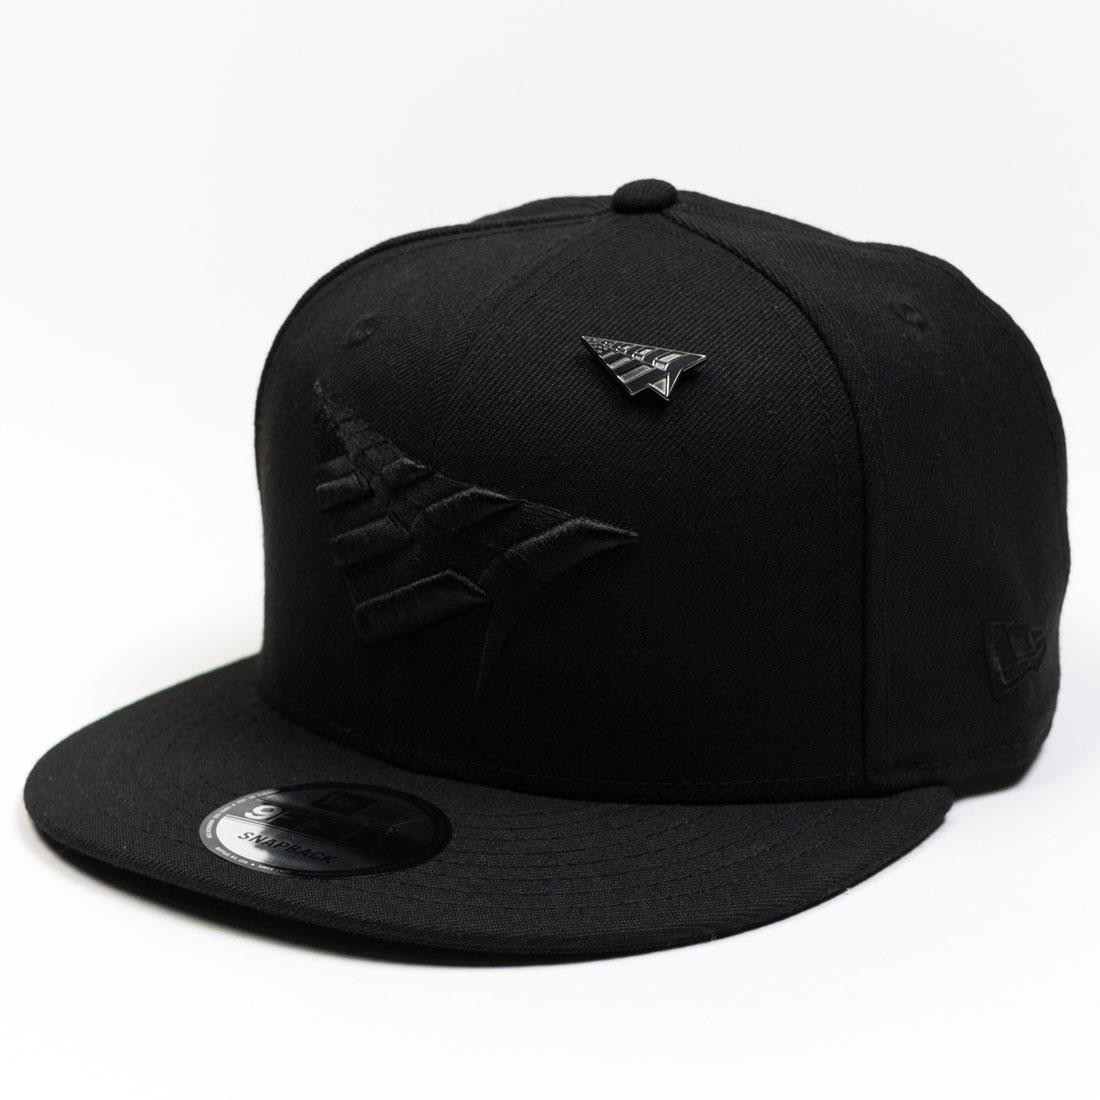 1dbab151609d4 Roc Nation The Crown Snapback With Pin and Black Undervisor black black